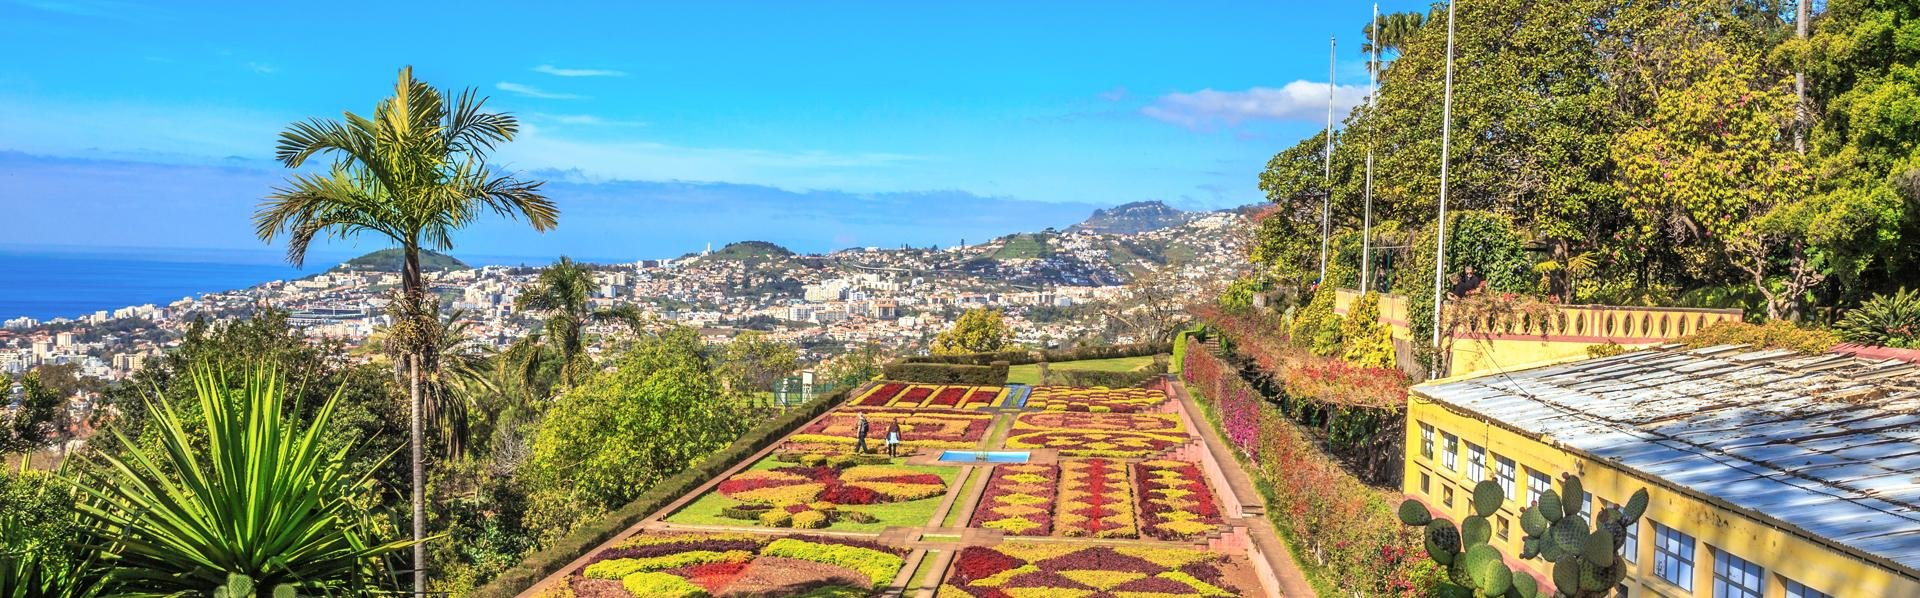 Botanische tuin in Funchal, Madeira, Portugal